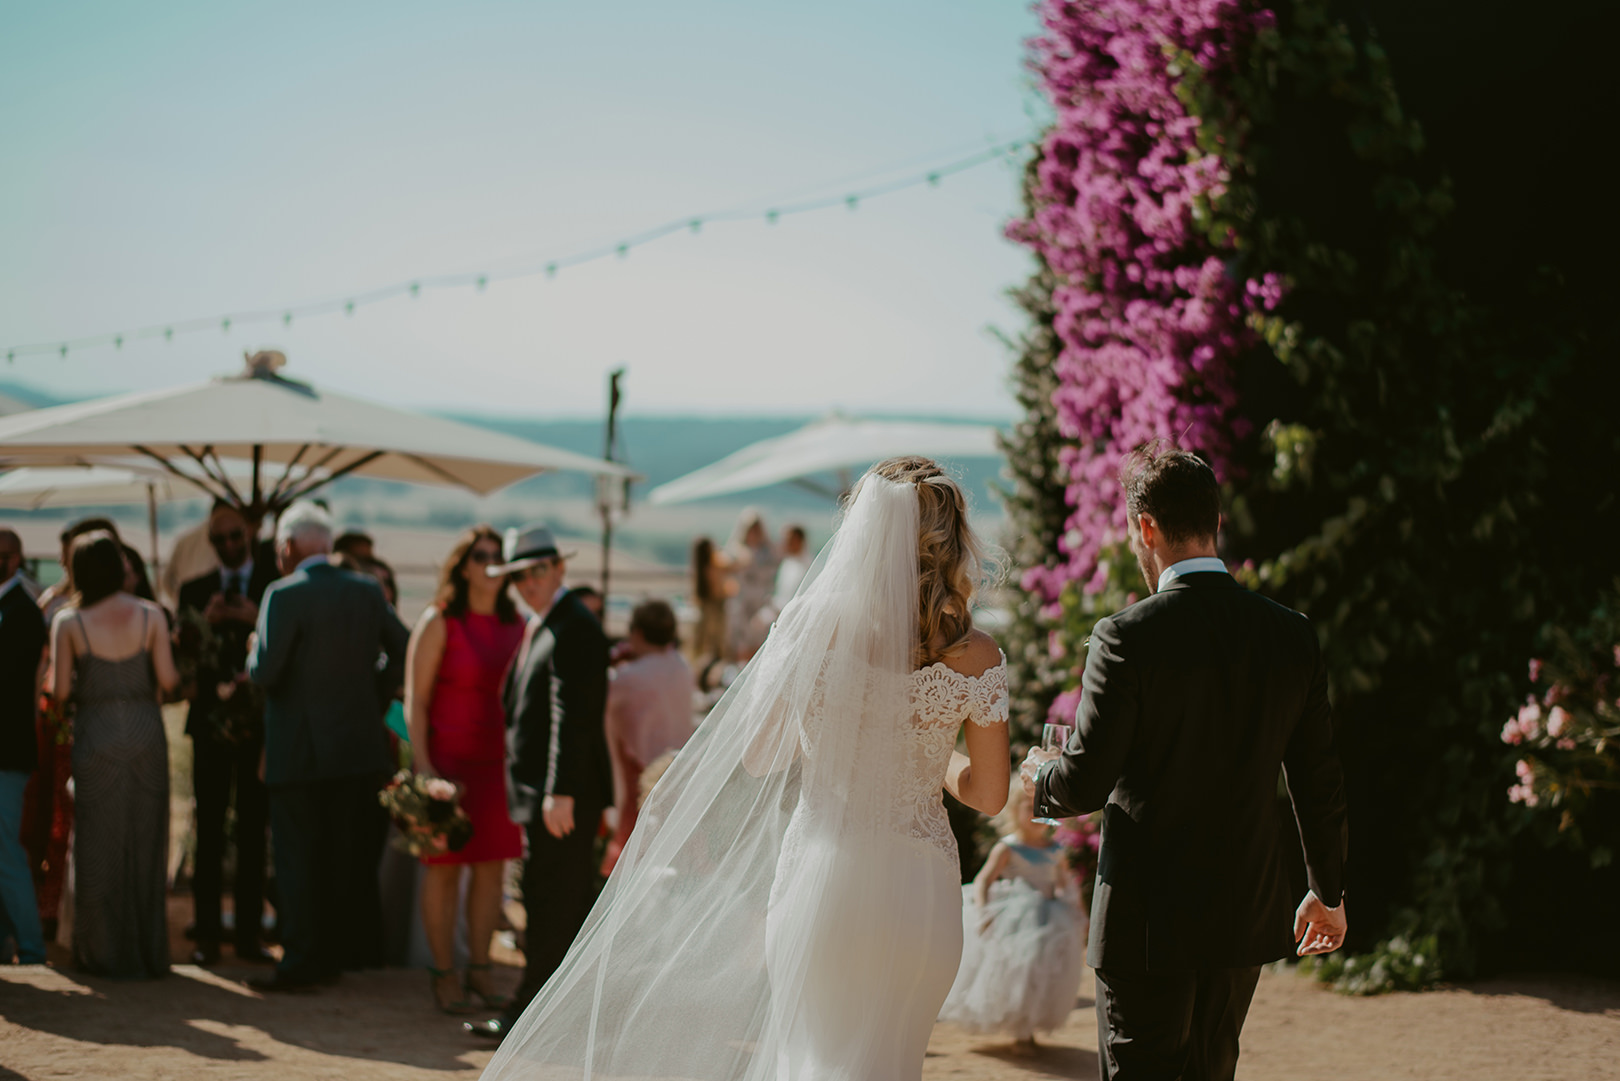 Bride and groom entering reception in Spain